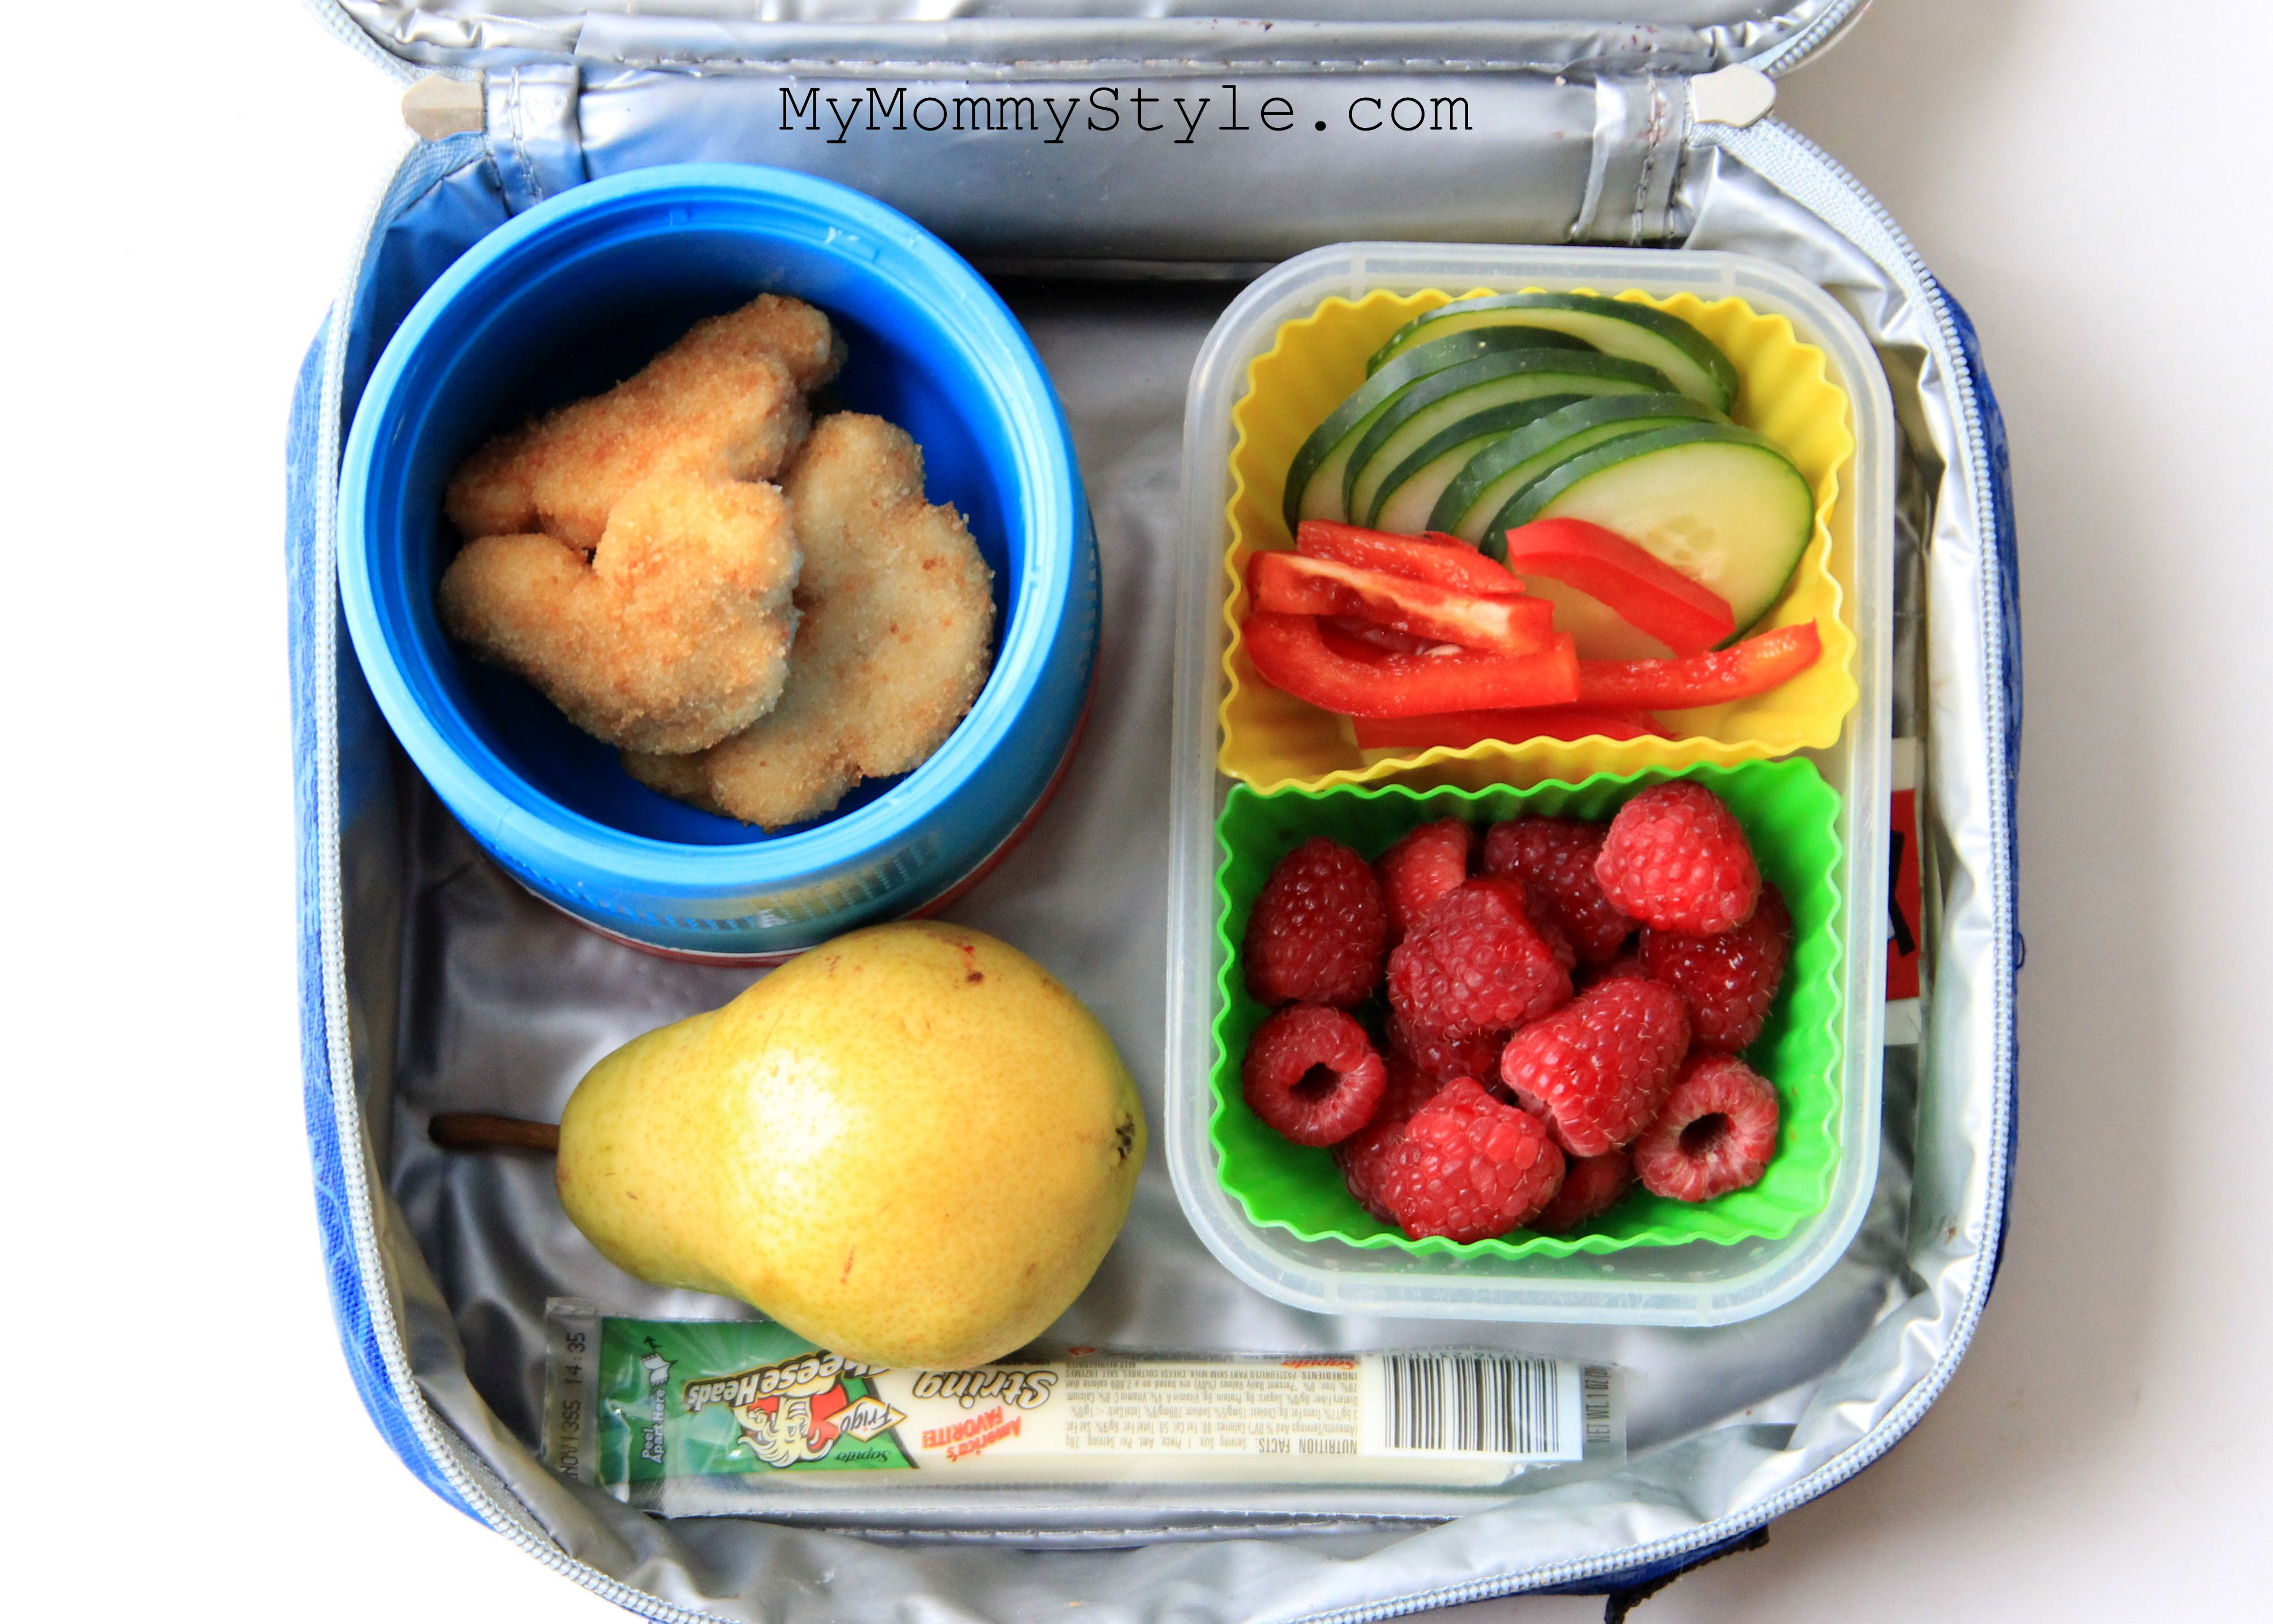 Lunch box ideas things to put in a thermos lunch box ideas lunch lunch box ideas things to put in a thermos forumfinder Images